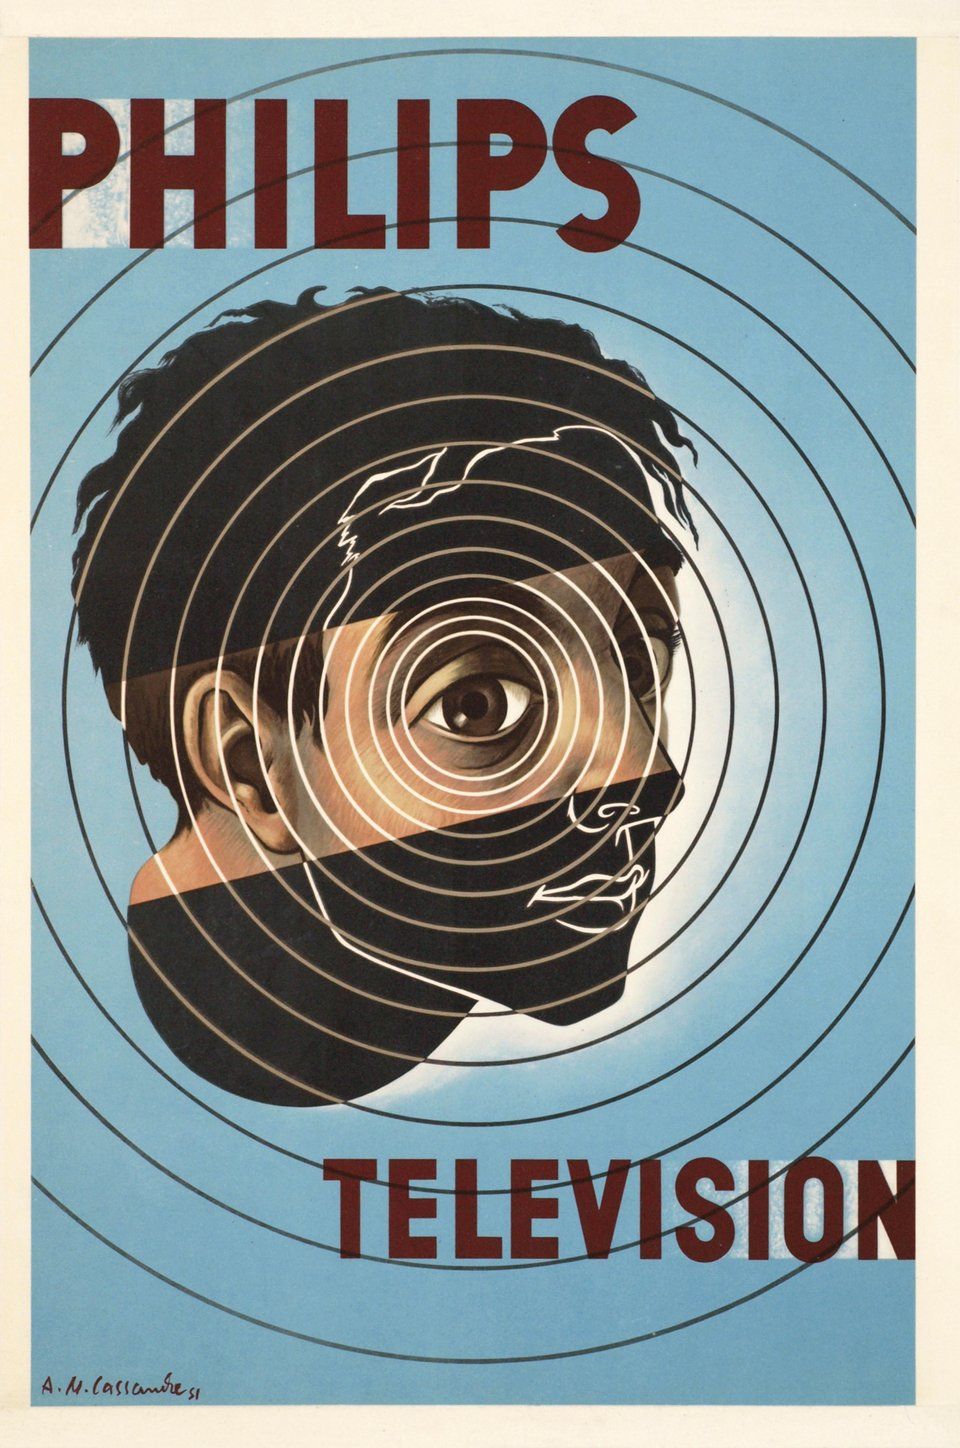 Philips Television – Vintage poster –  CASSANDRE, Adolphe MOURON – 1955